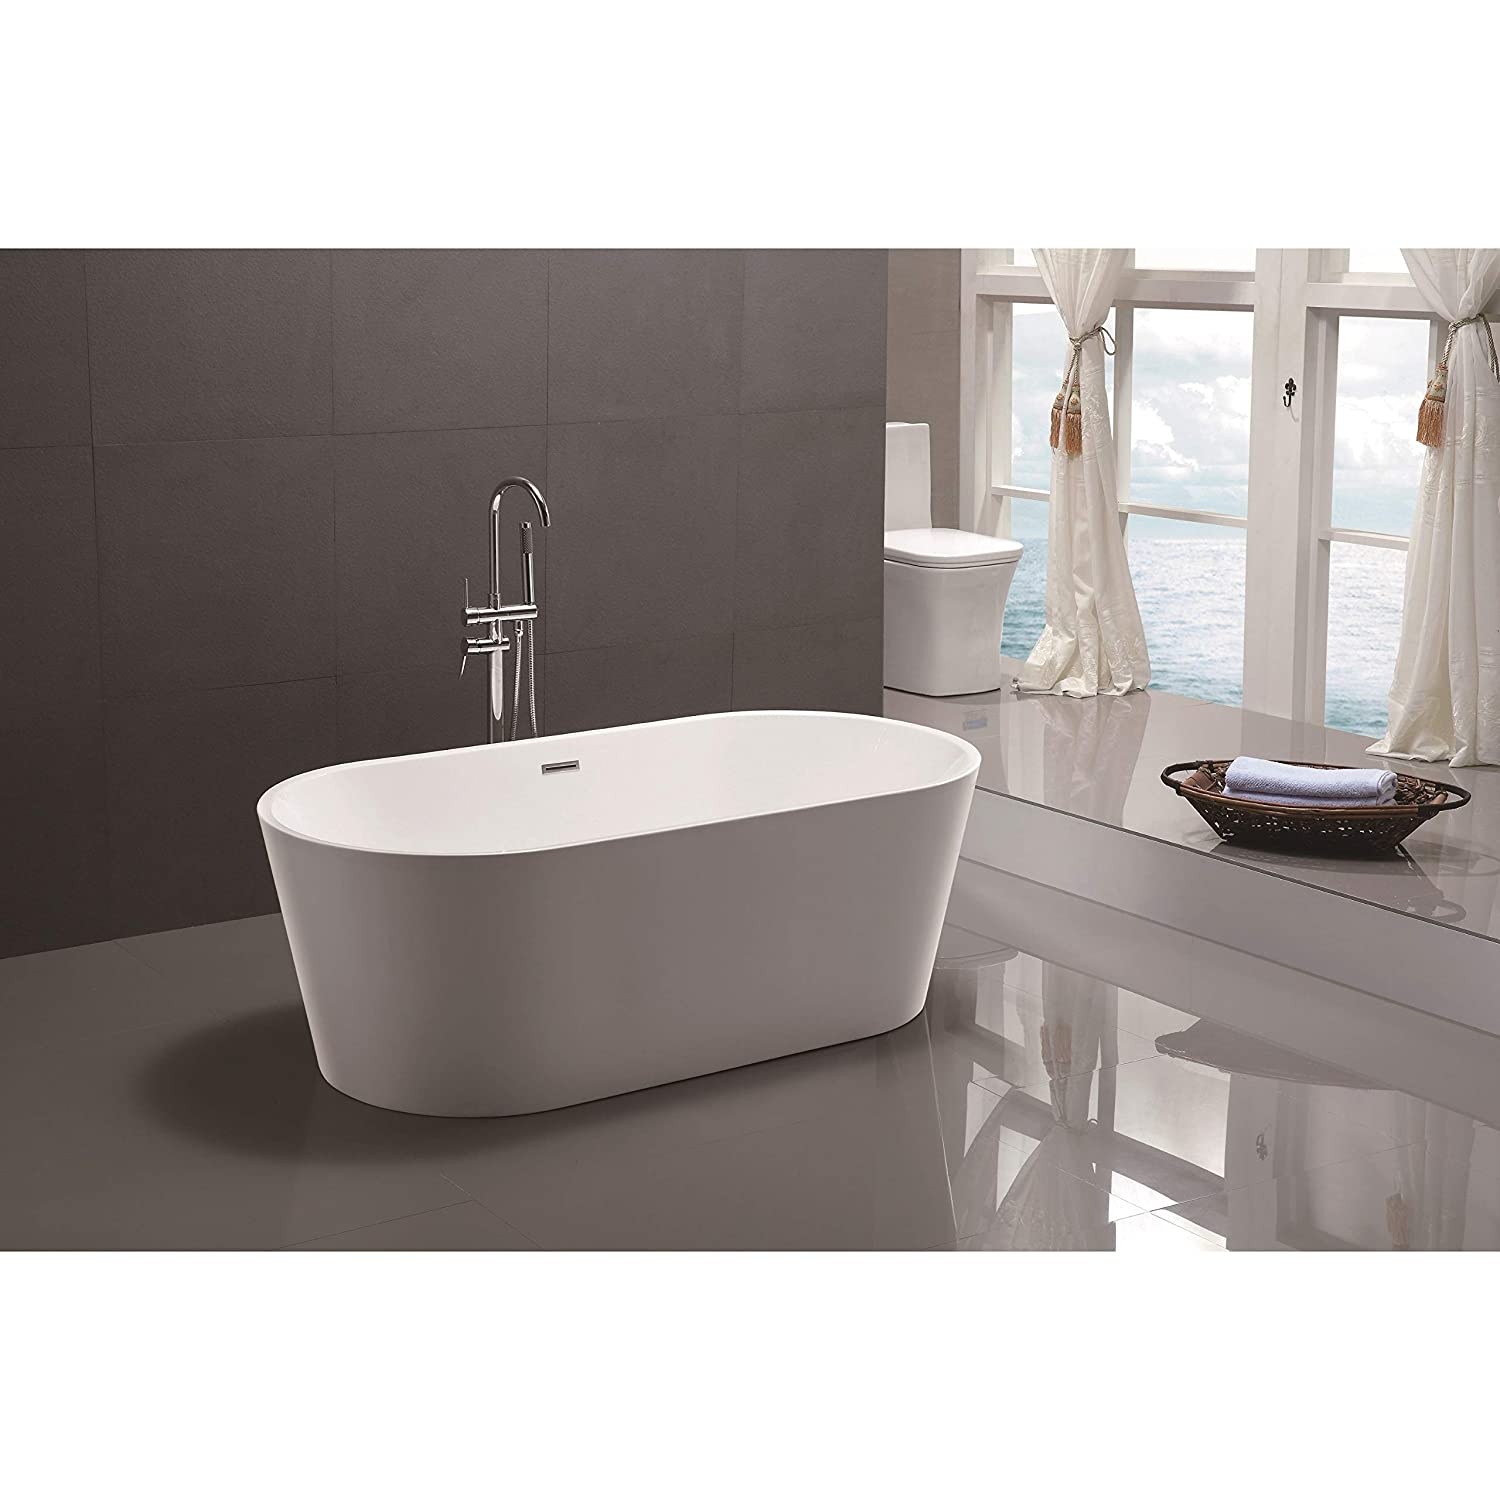 Vanity art 59 inch freestanding acrylic bathtub modern stand alone soaking tub with chrome finish upc certified slotted overflow pop up drain